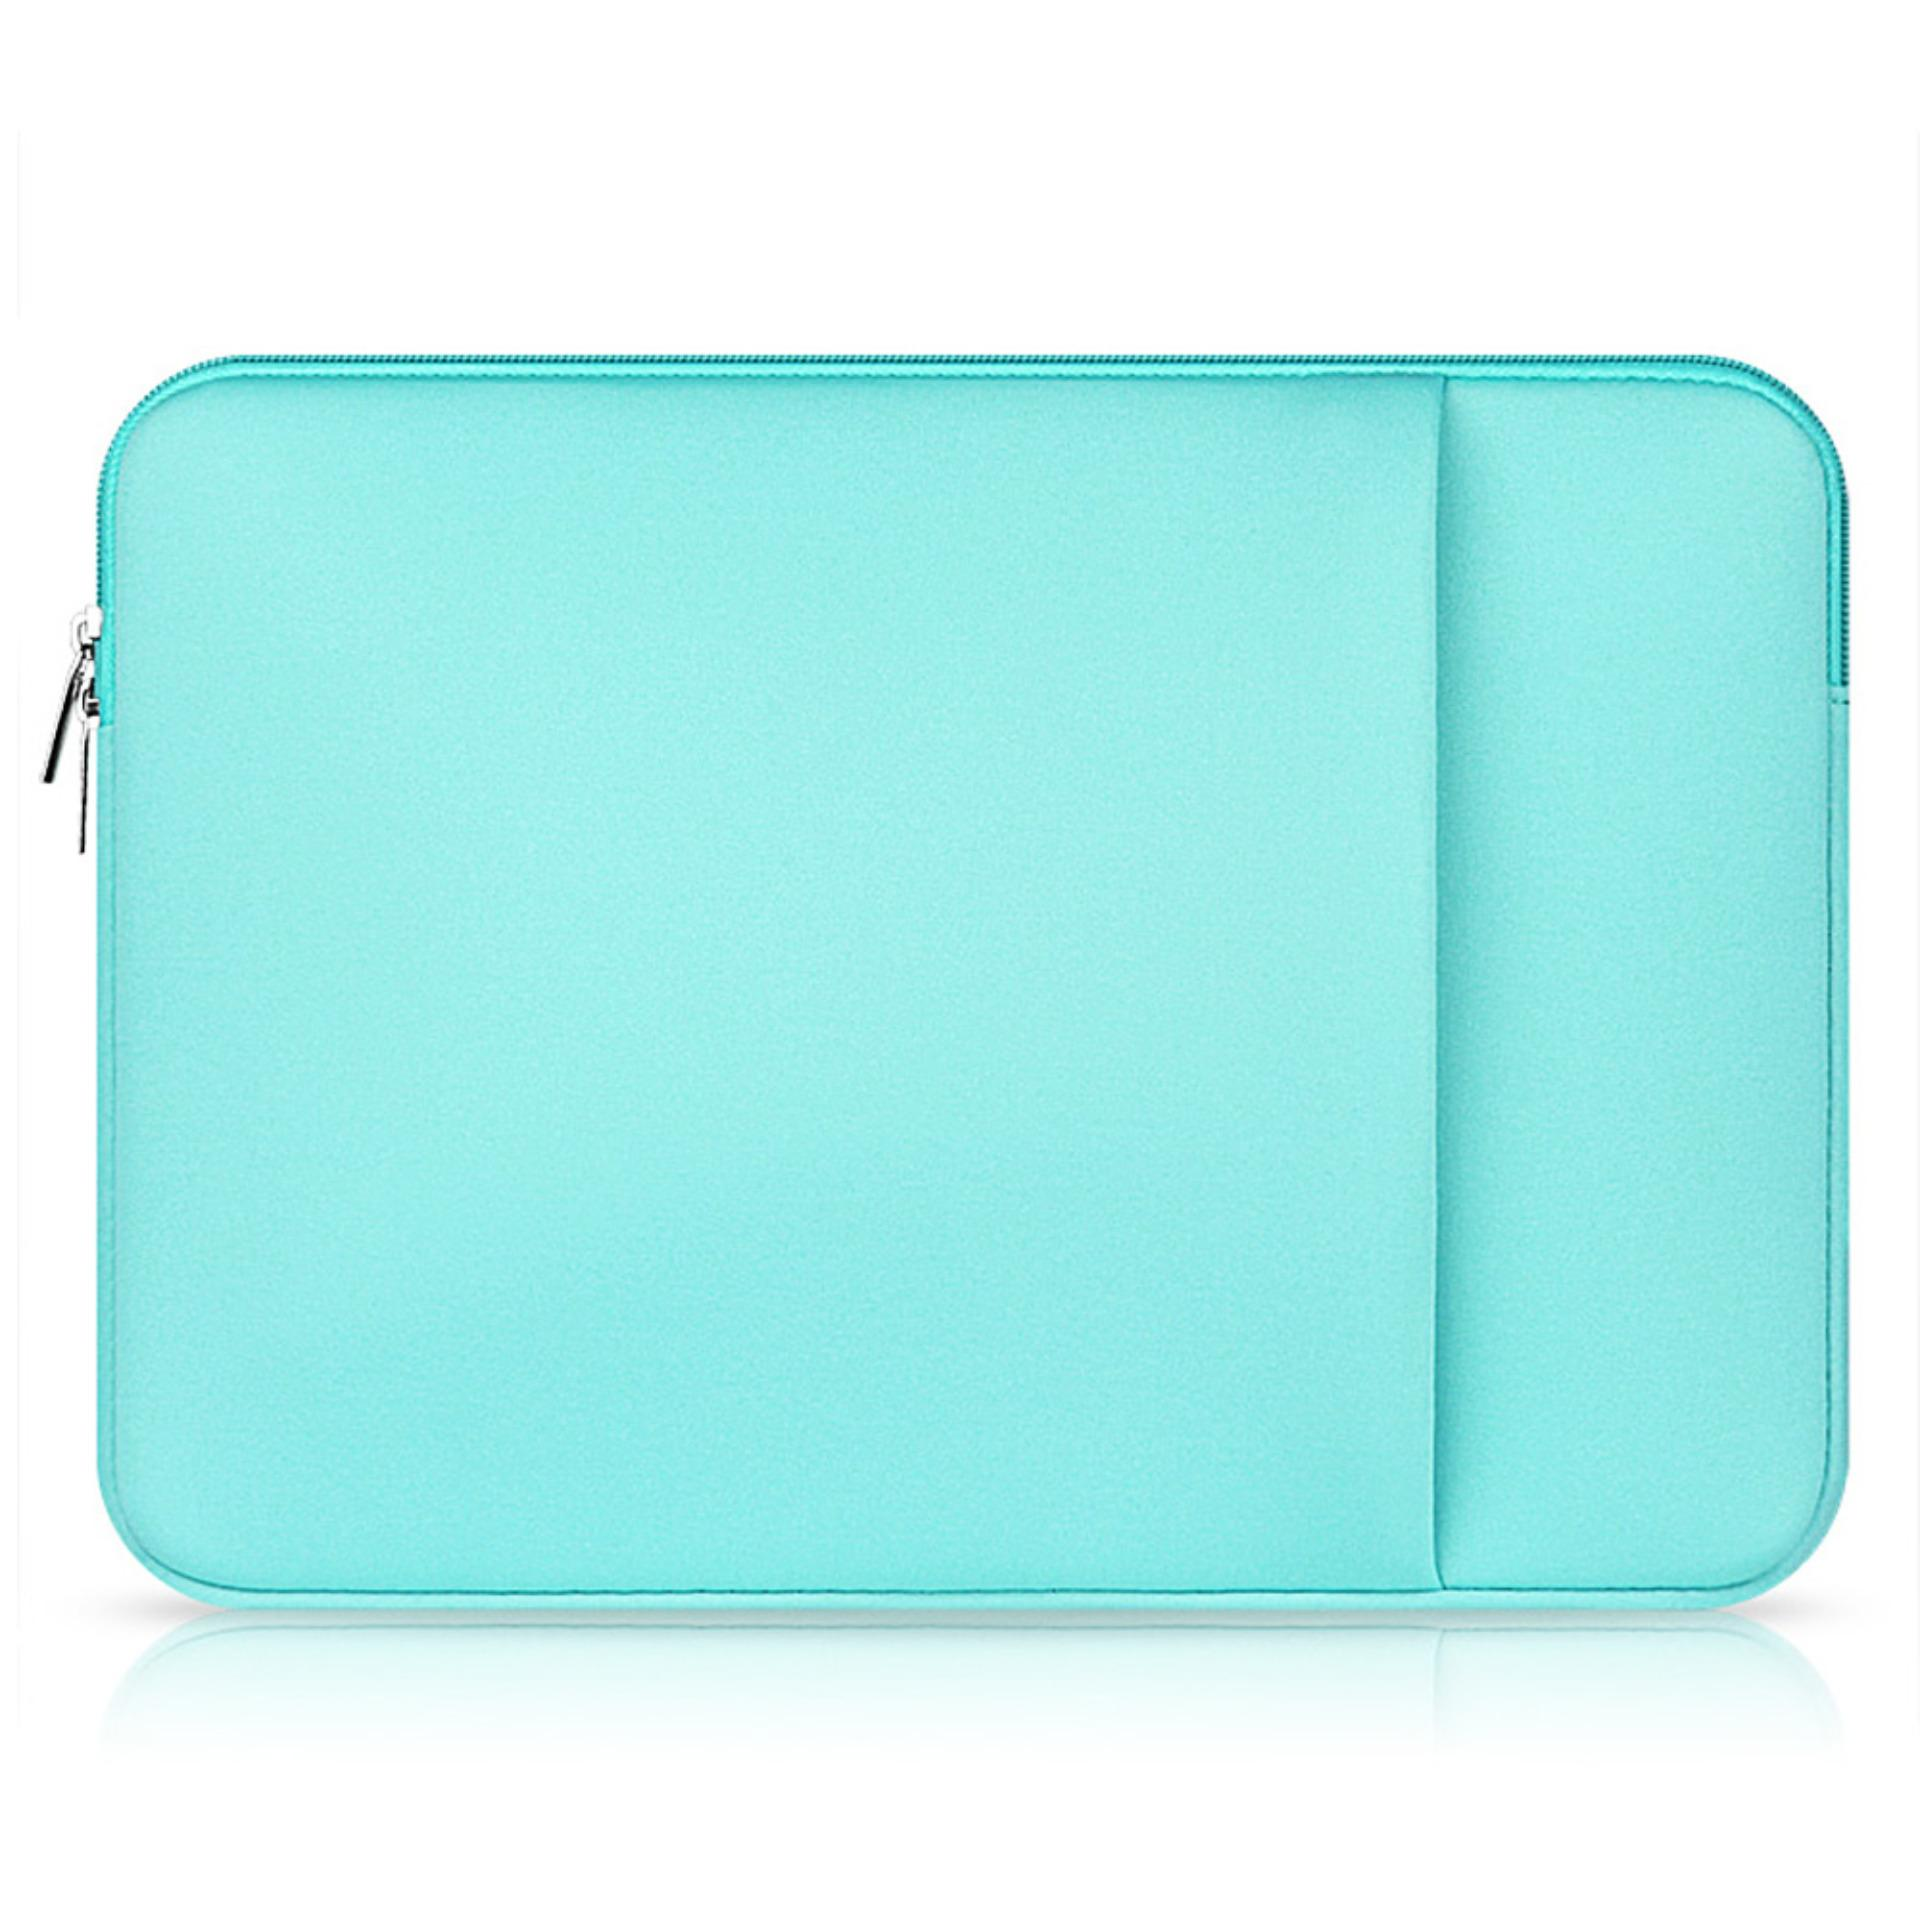 Spesifikasi Laptop Protective Carrying Sleeve Pouch Bag With Side Pocket For Universal 15 6 Inch Laptop Mint Green Thinch Terbaru